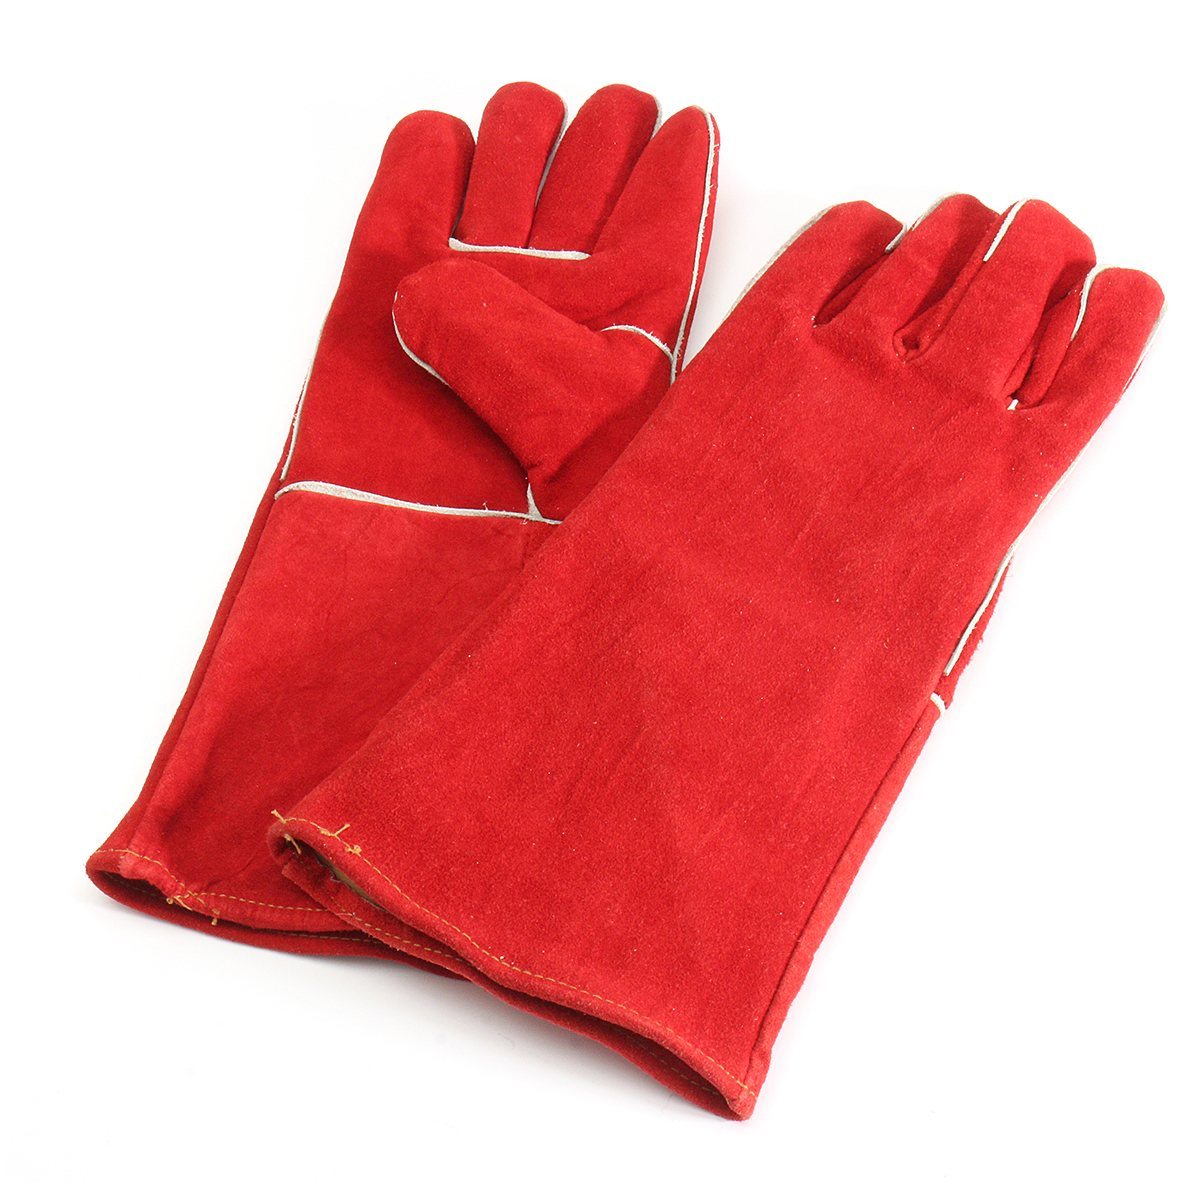 Safurance 15.7'' Heat Resistant Melting Furnace Gloves Fire High Temperature Protection XL Workplace Safety